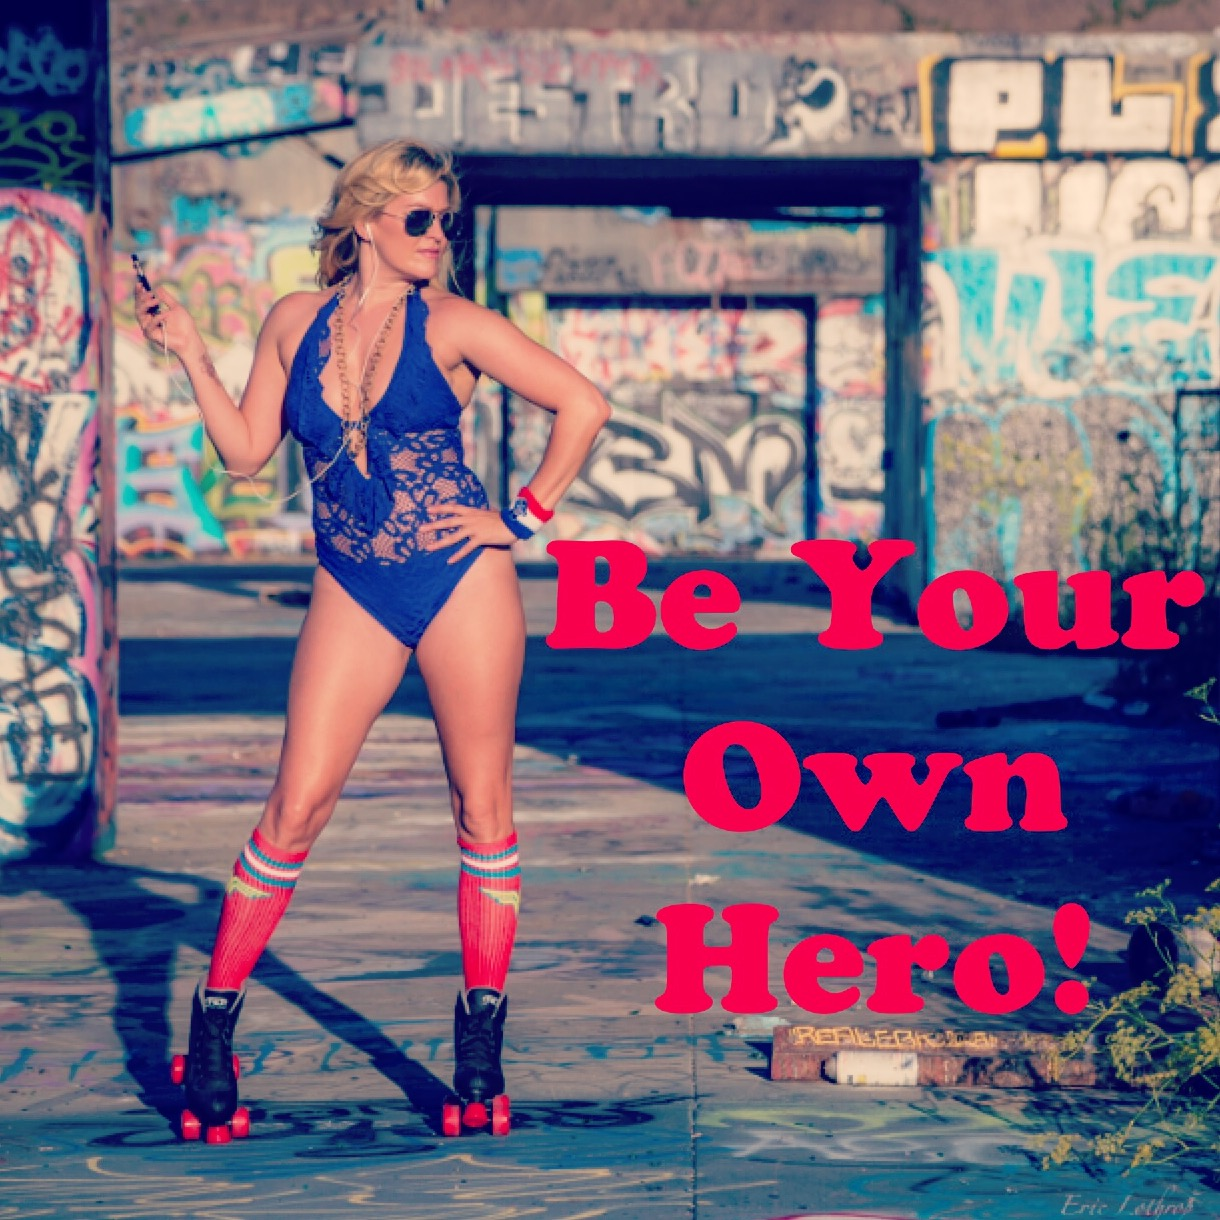 Kick Ass and Be Your Own hero